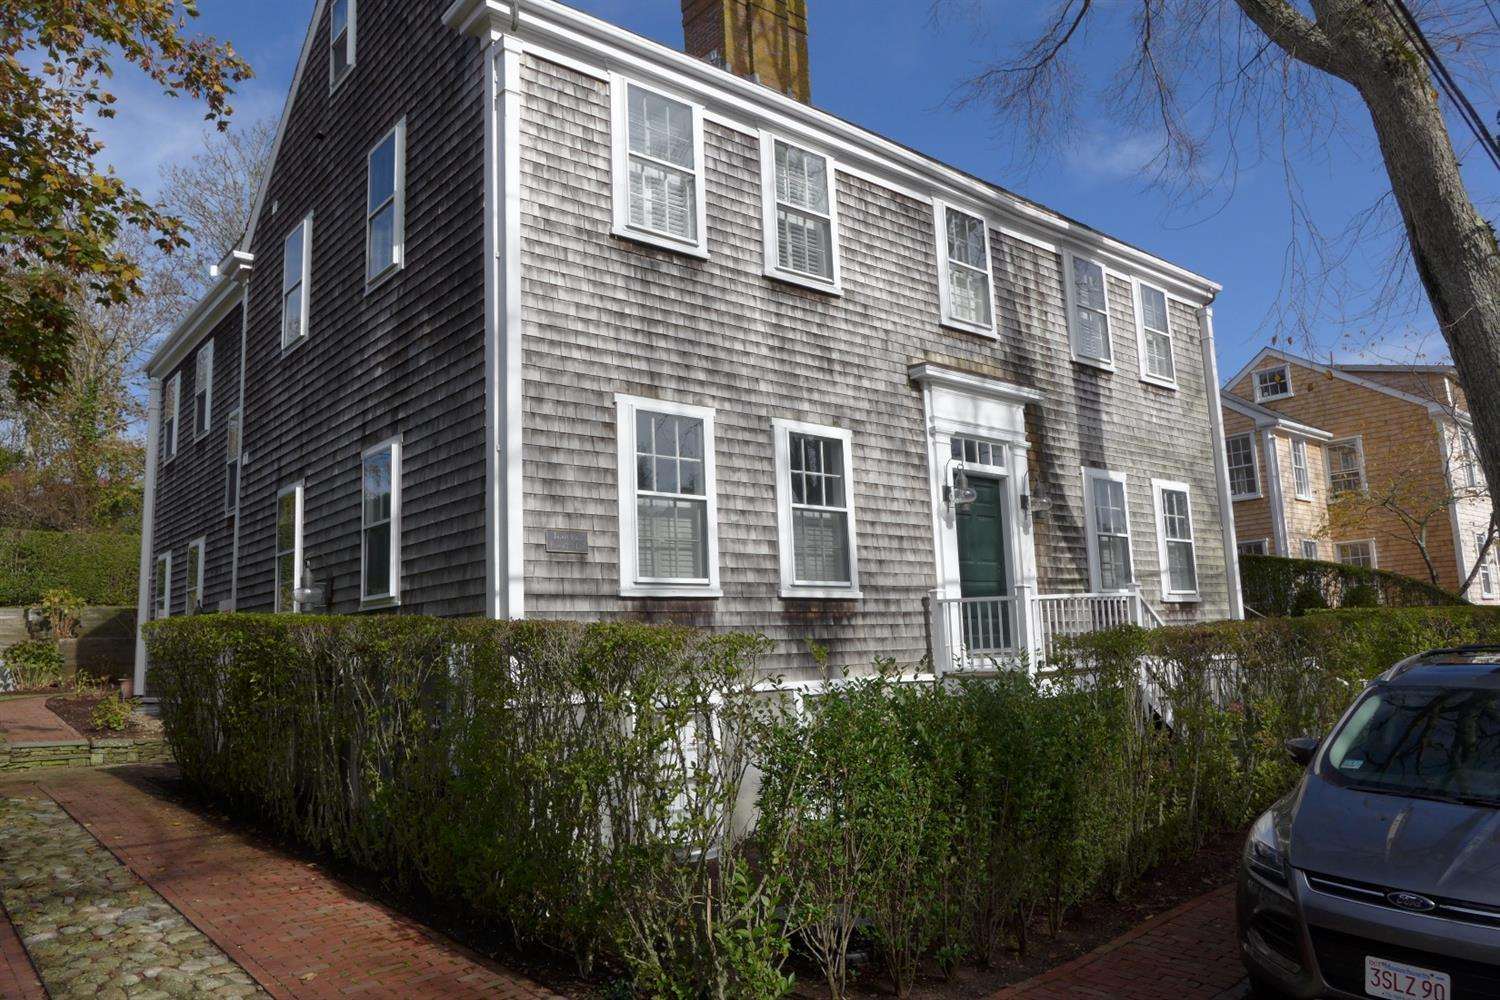 23 w chester st nantucket ma mls 21609368 ziprealty for Houses for sale on nantucket